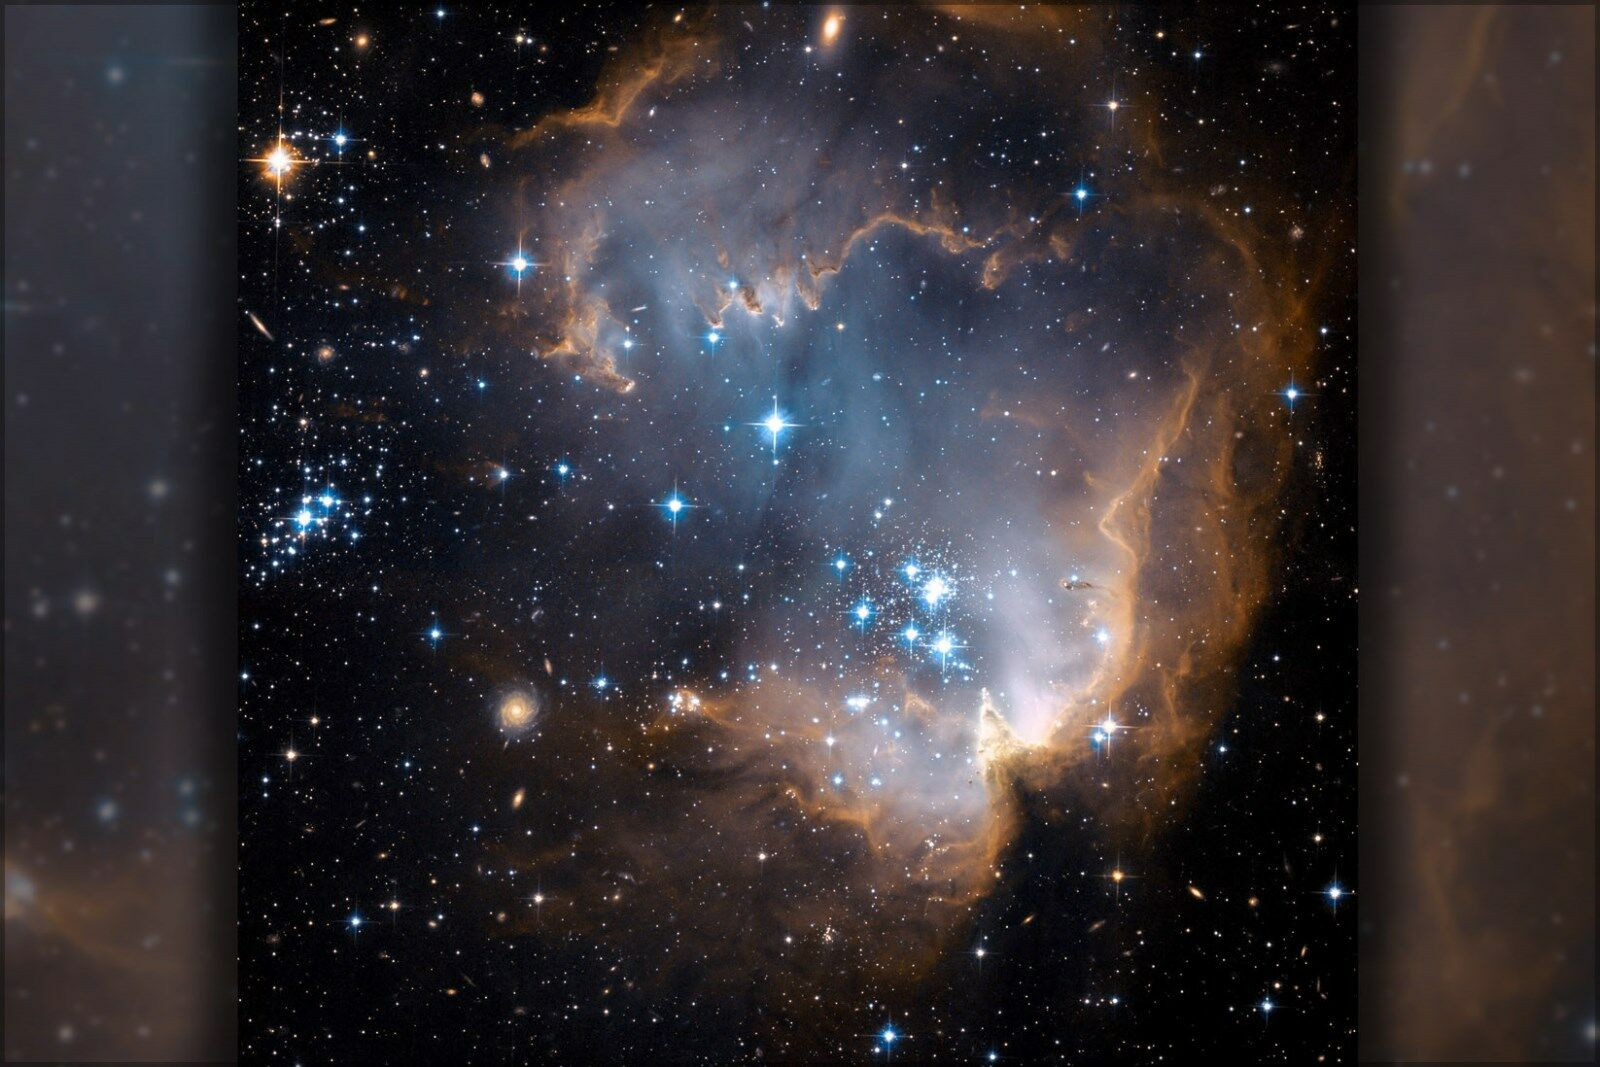 Poster, Many Größes; Ngc 602 And N90 As Seen By Hubble Space Telescope